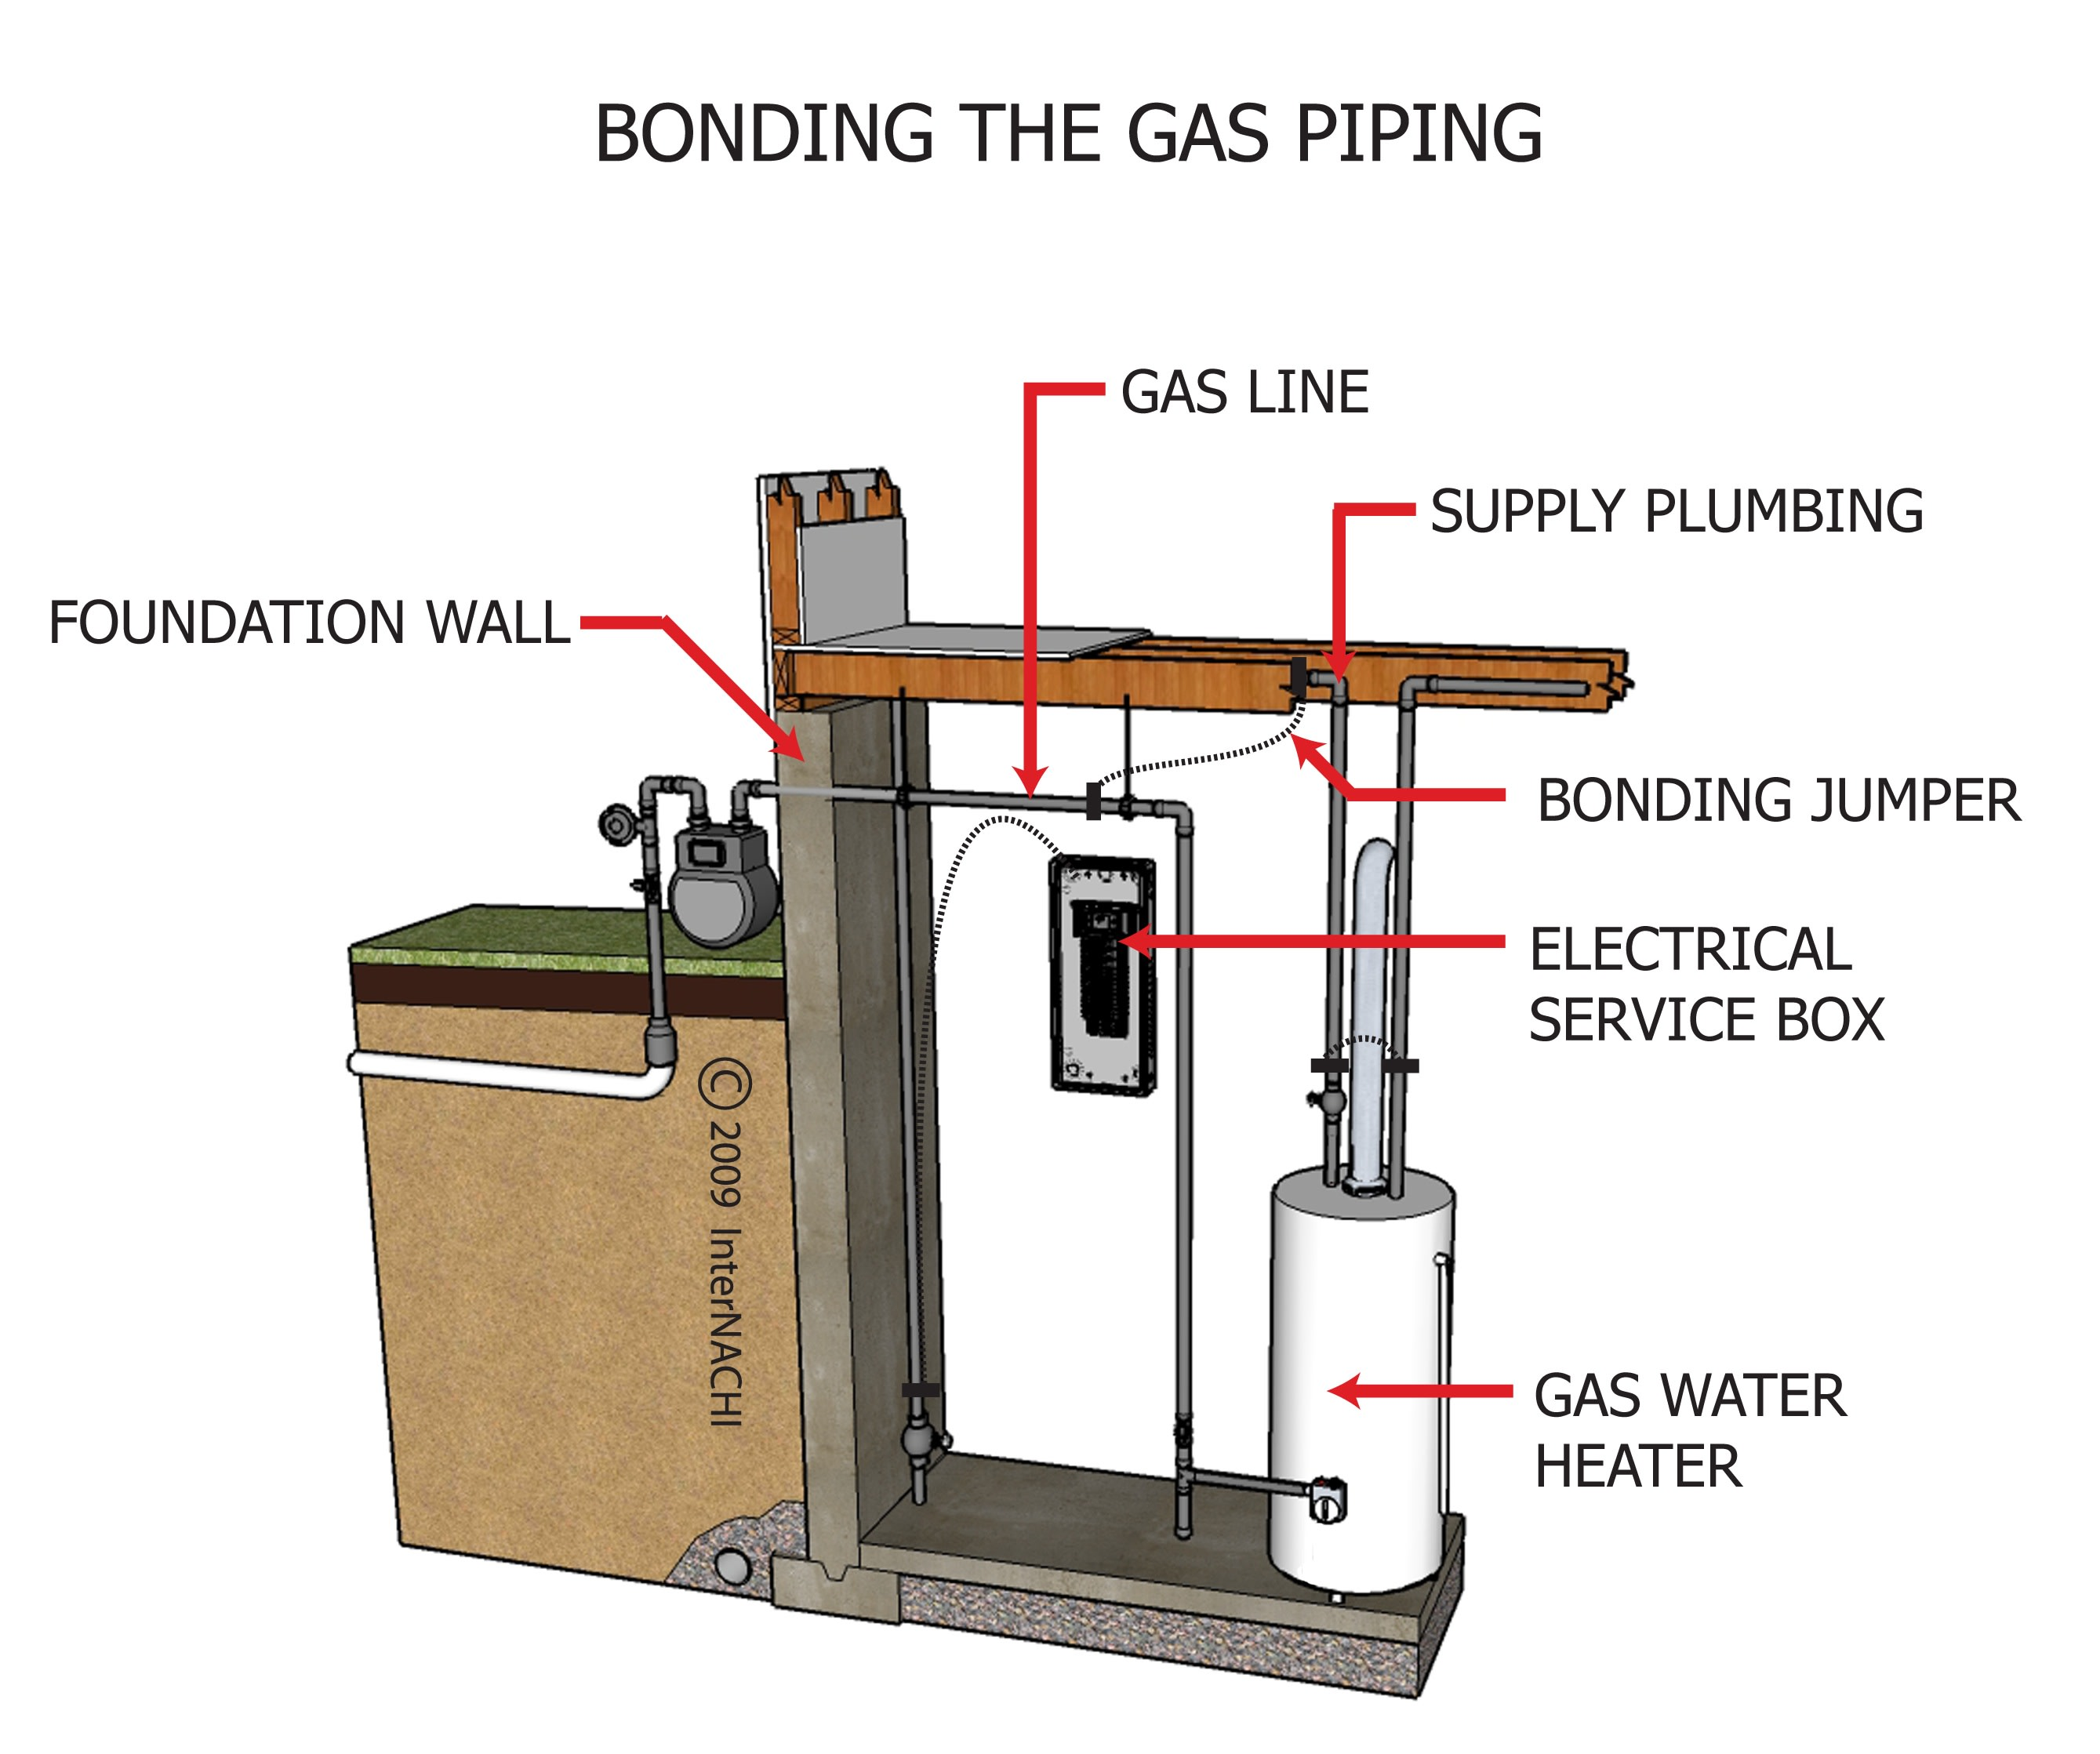 Bonding the gas piping.